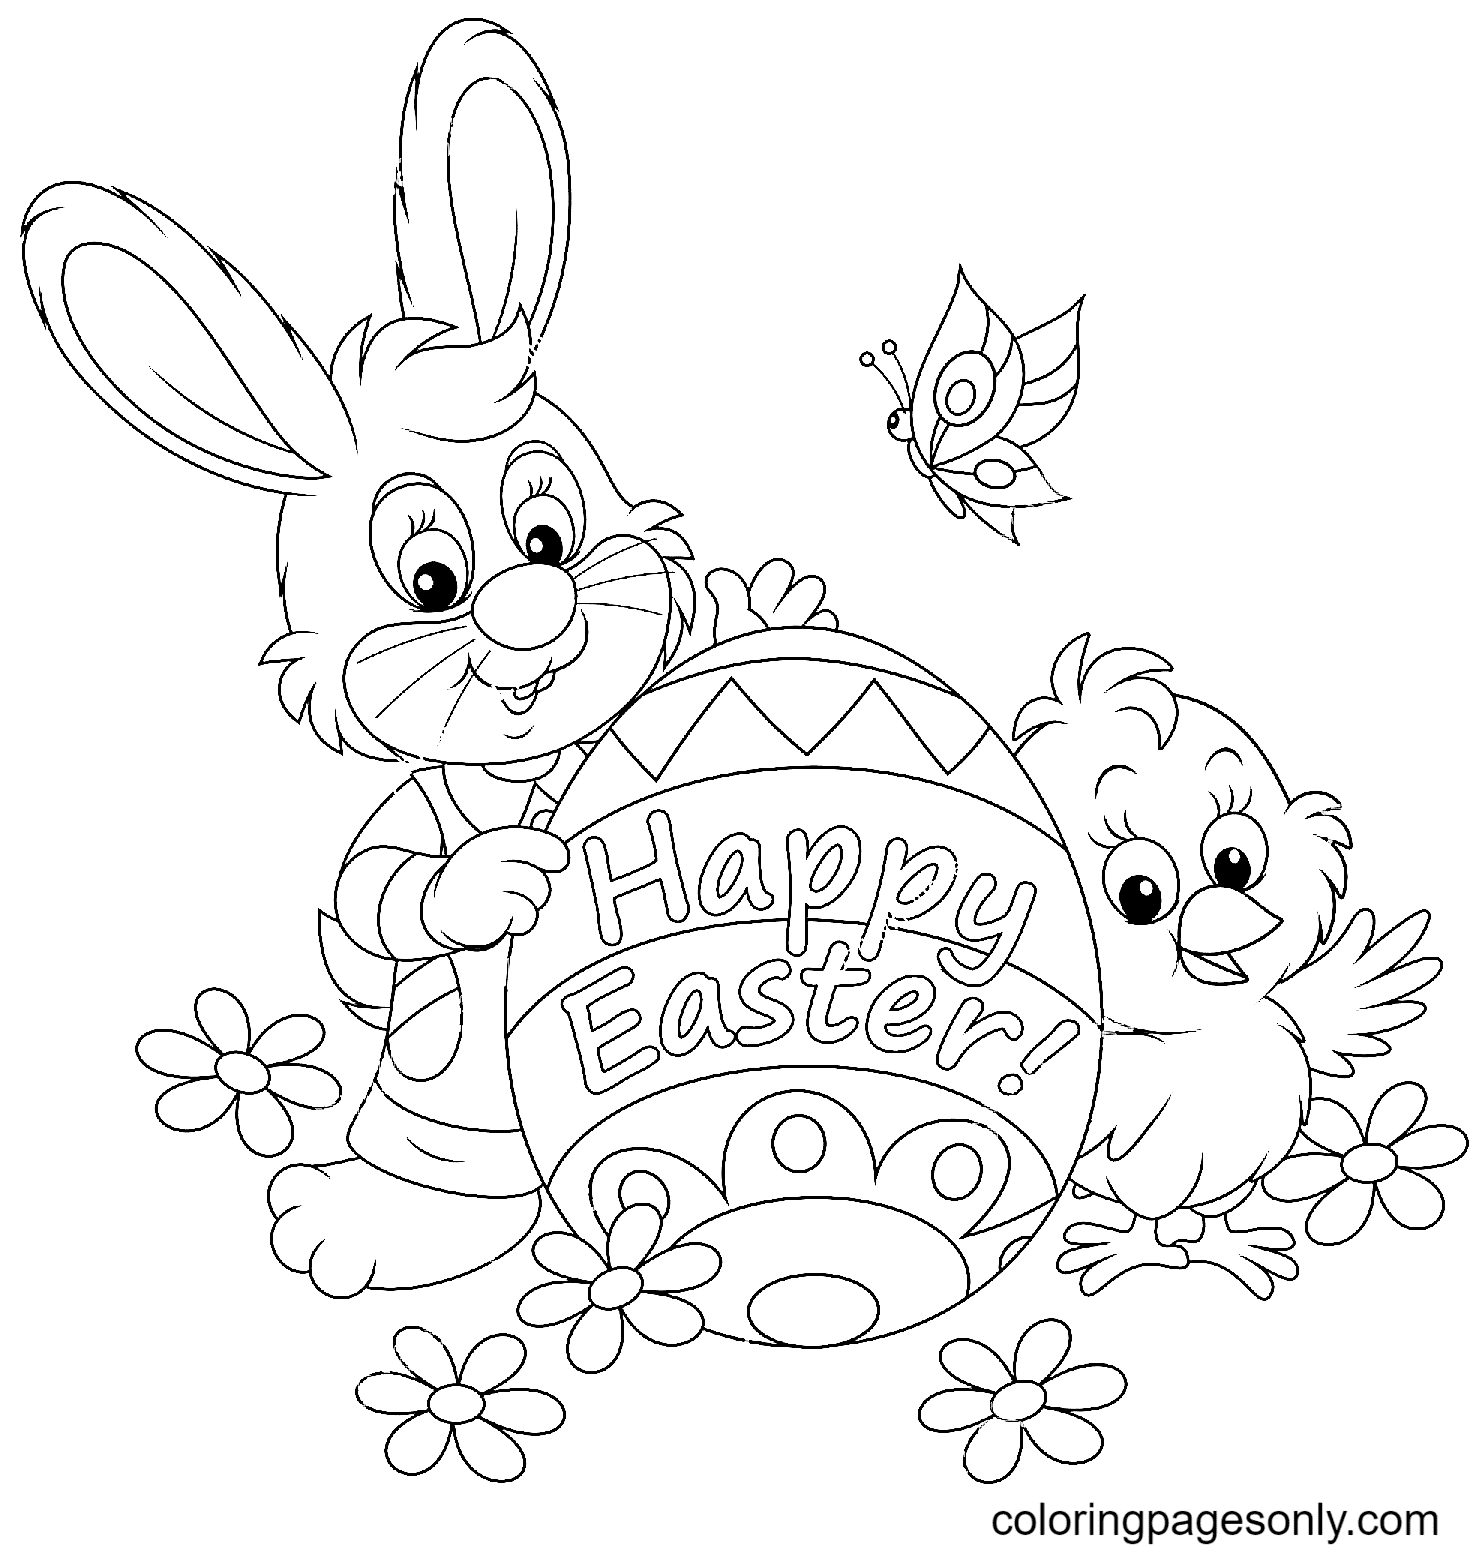 Easter Bunny and Chick Coloring Page